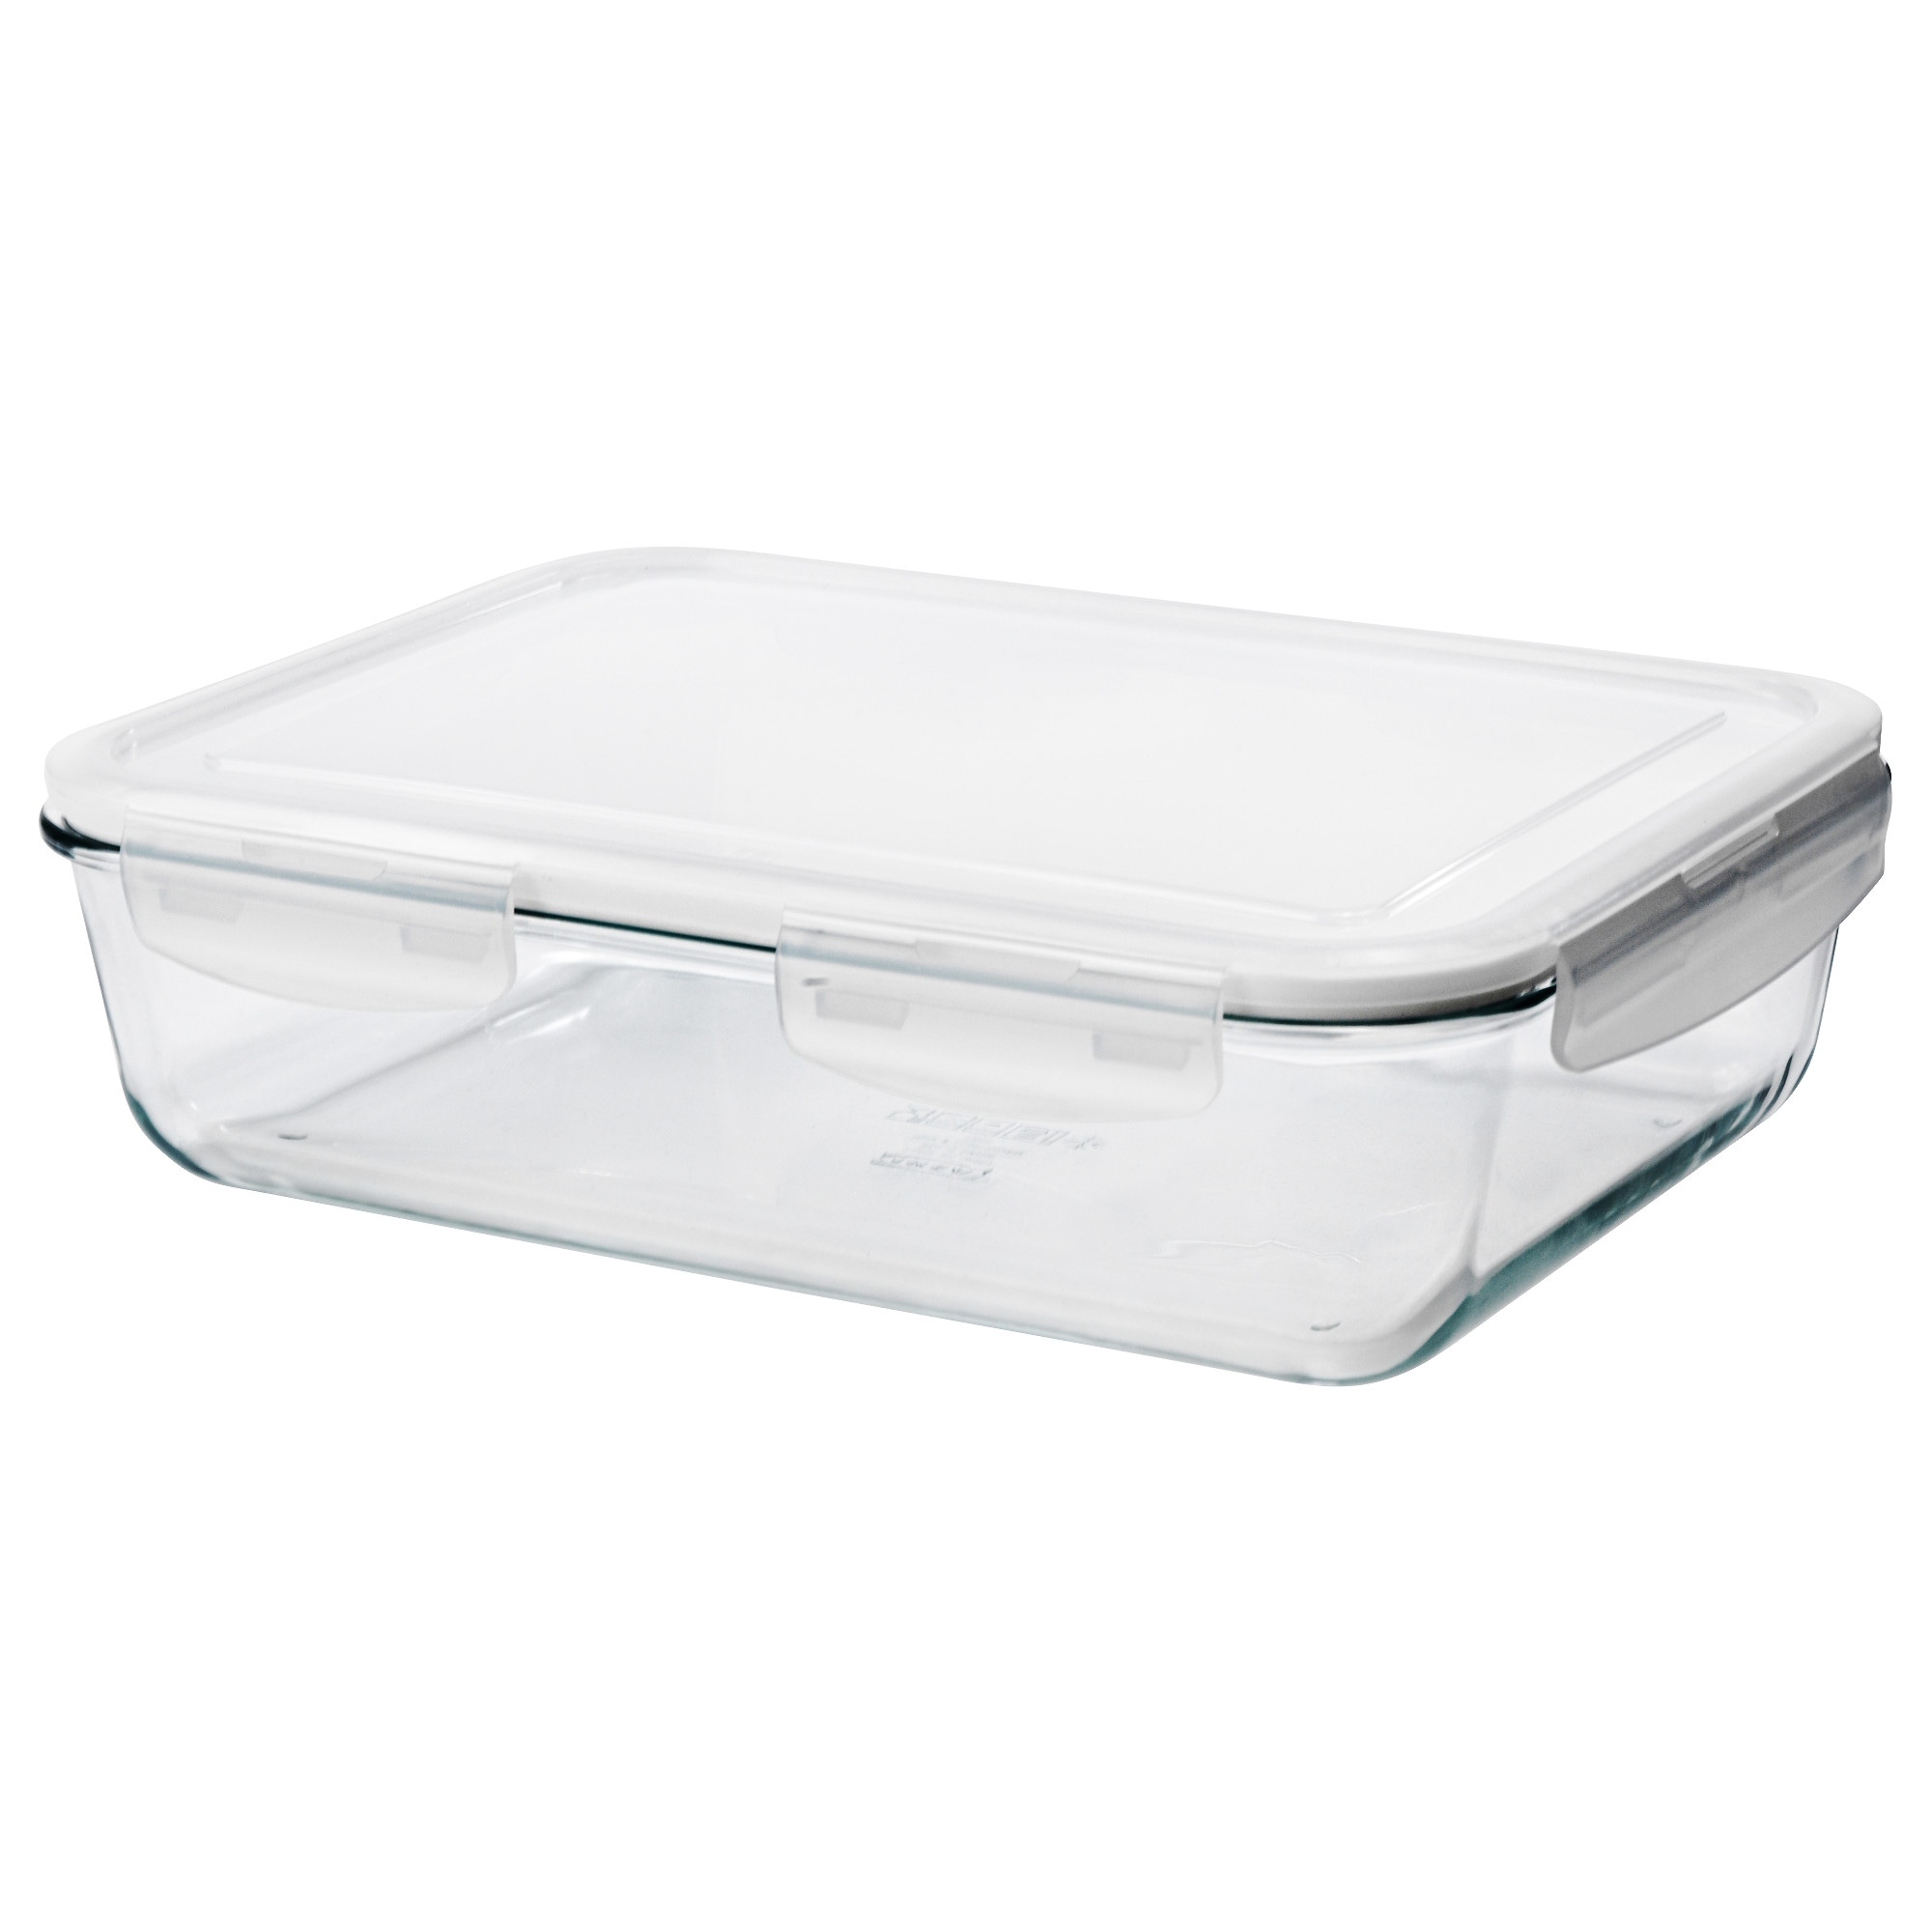 Food containers Food storage organizing IKEA